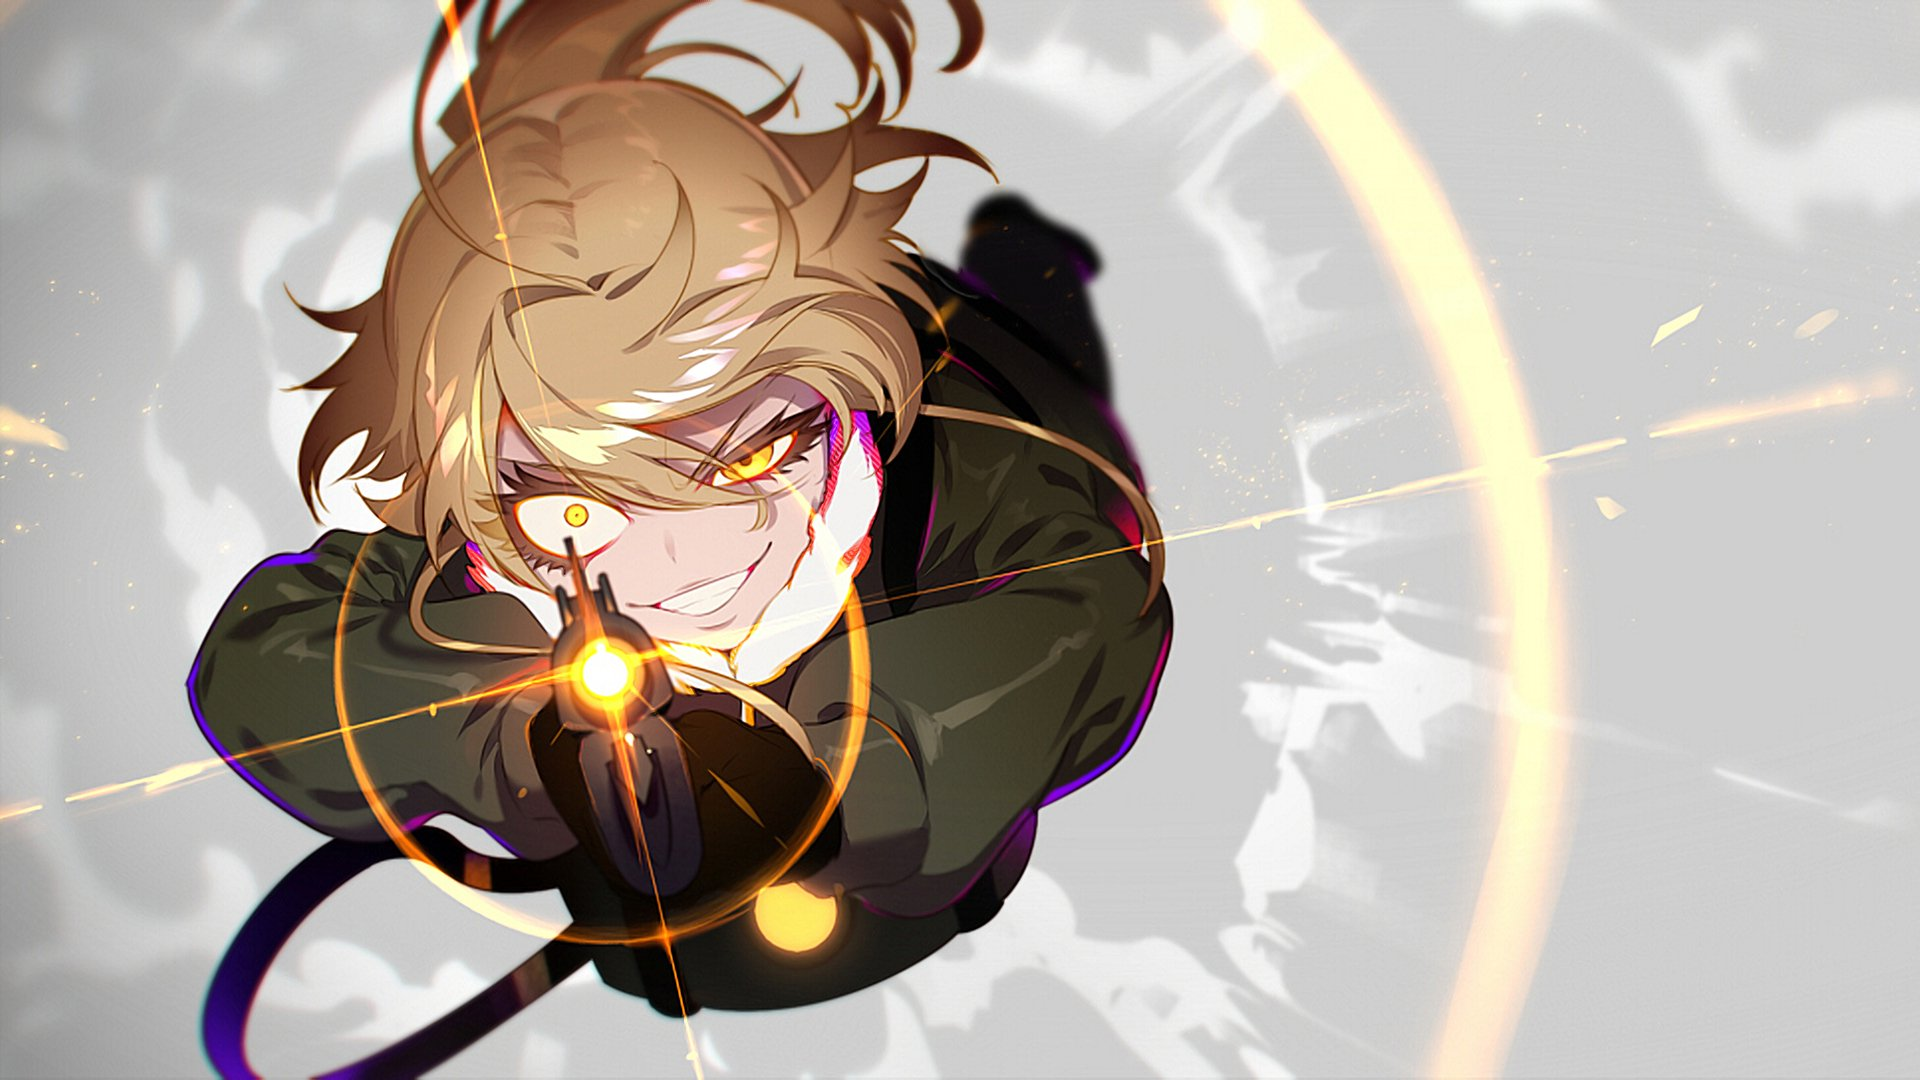 Military Anime Wallpapers Hd Quotes Backgrounds With Art: 259 Youjo Senki HD Wallpapers